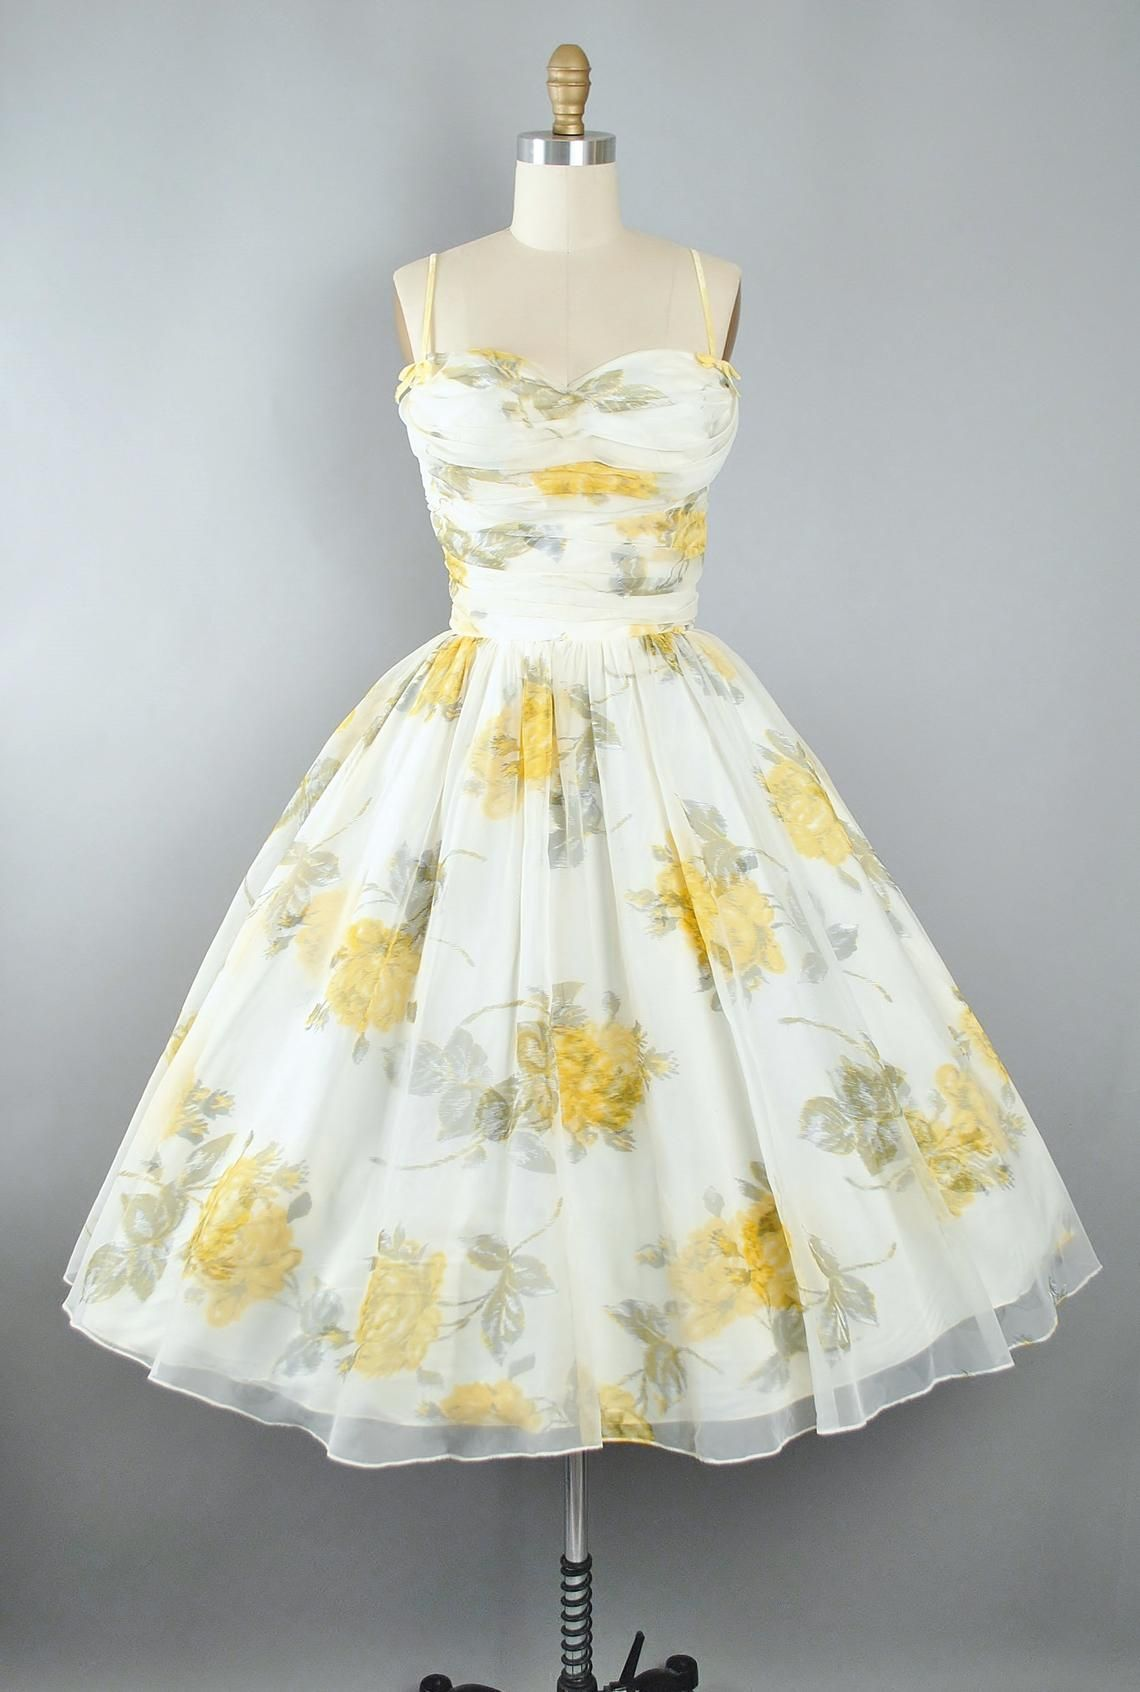 Reserved 50s Rose Print Dress 1950s Chiffon Yellow Oversize Floral Roses Sweetheart Bust Overlay Full Circle Skirt Pinup Garden Party Xs 1950s Dress Rose Print Dress Vintage Floral Dress [ 1692 x 1140 Pixel ]